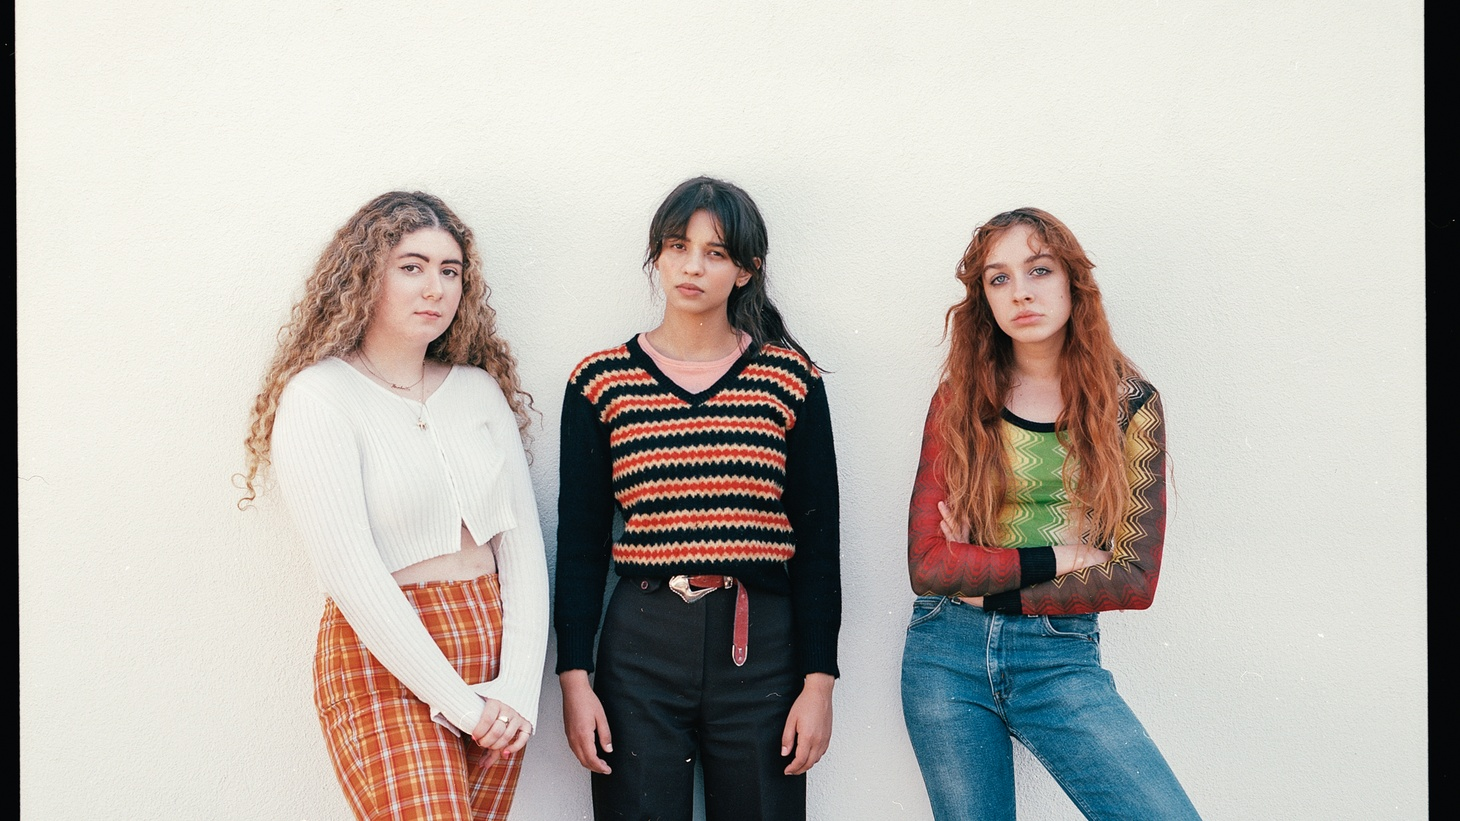 """""""Loose Change"""" is a frenzied story of redemption, punctuated by acoustic piano and horns. We hear the LA-based trio maturing into their own on the new album produced by wildman Hanni El Khatib withJonny Bell as co producer."""